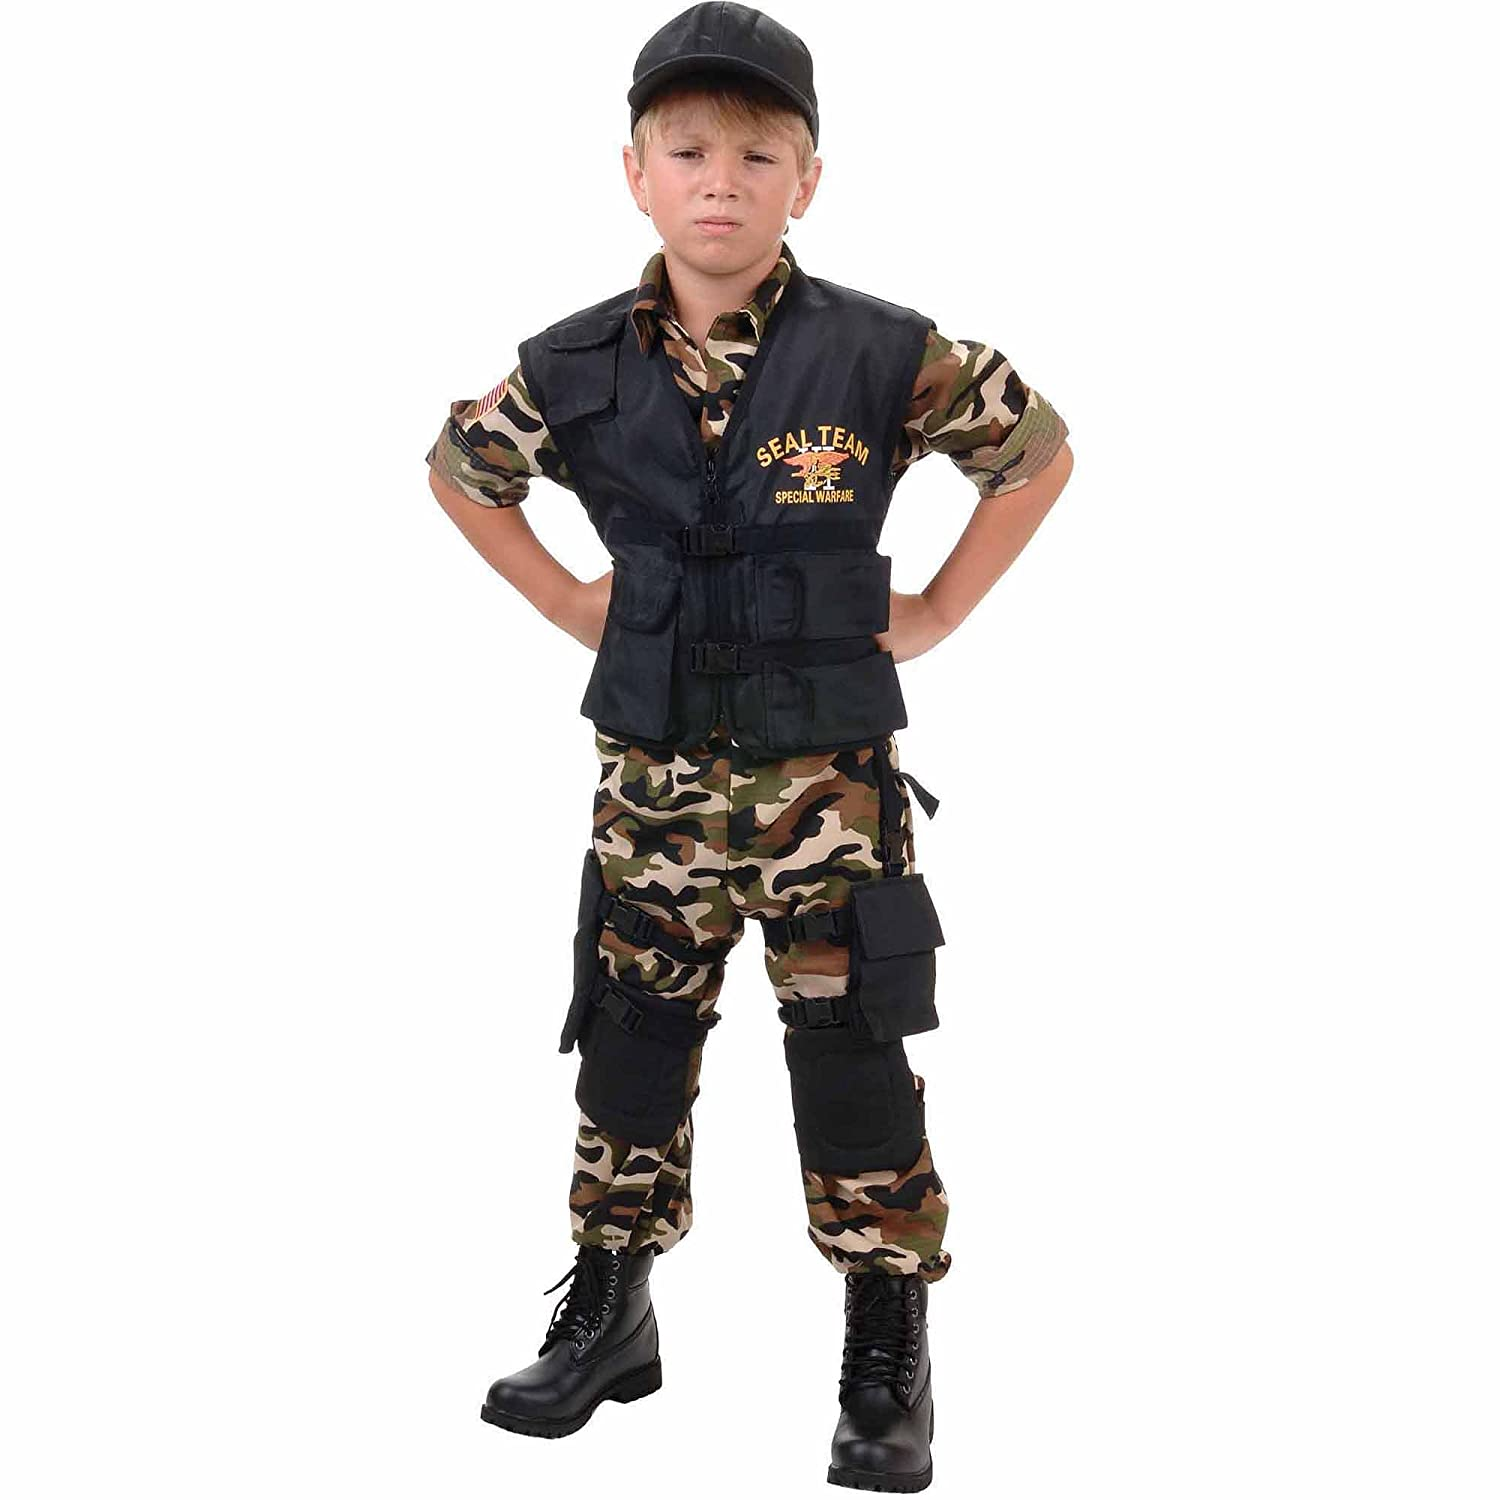 Child Costume Seal Team